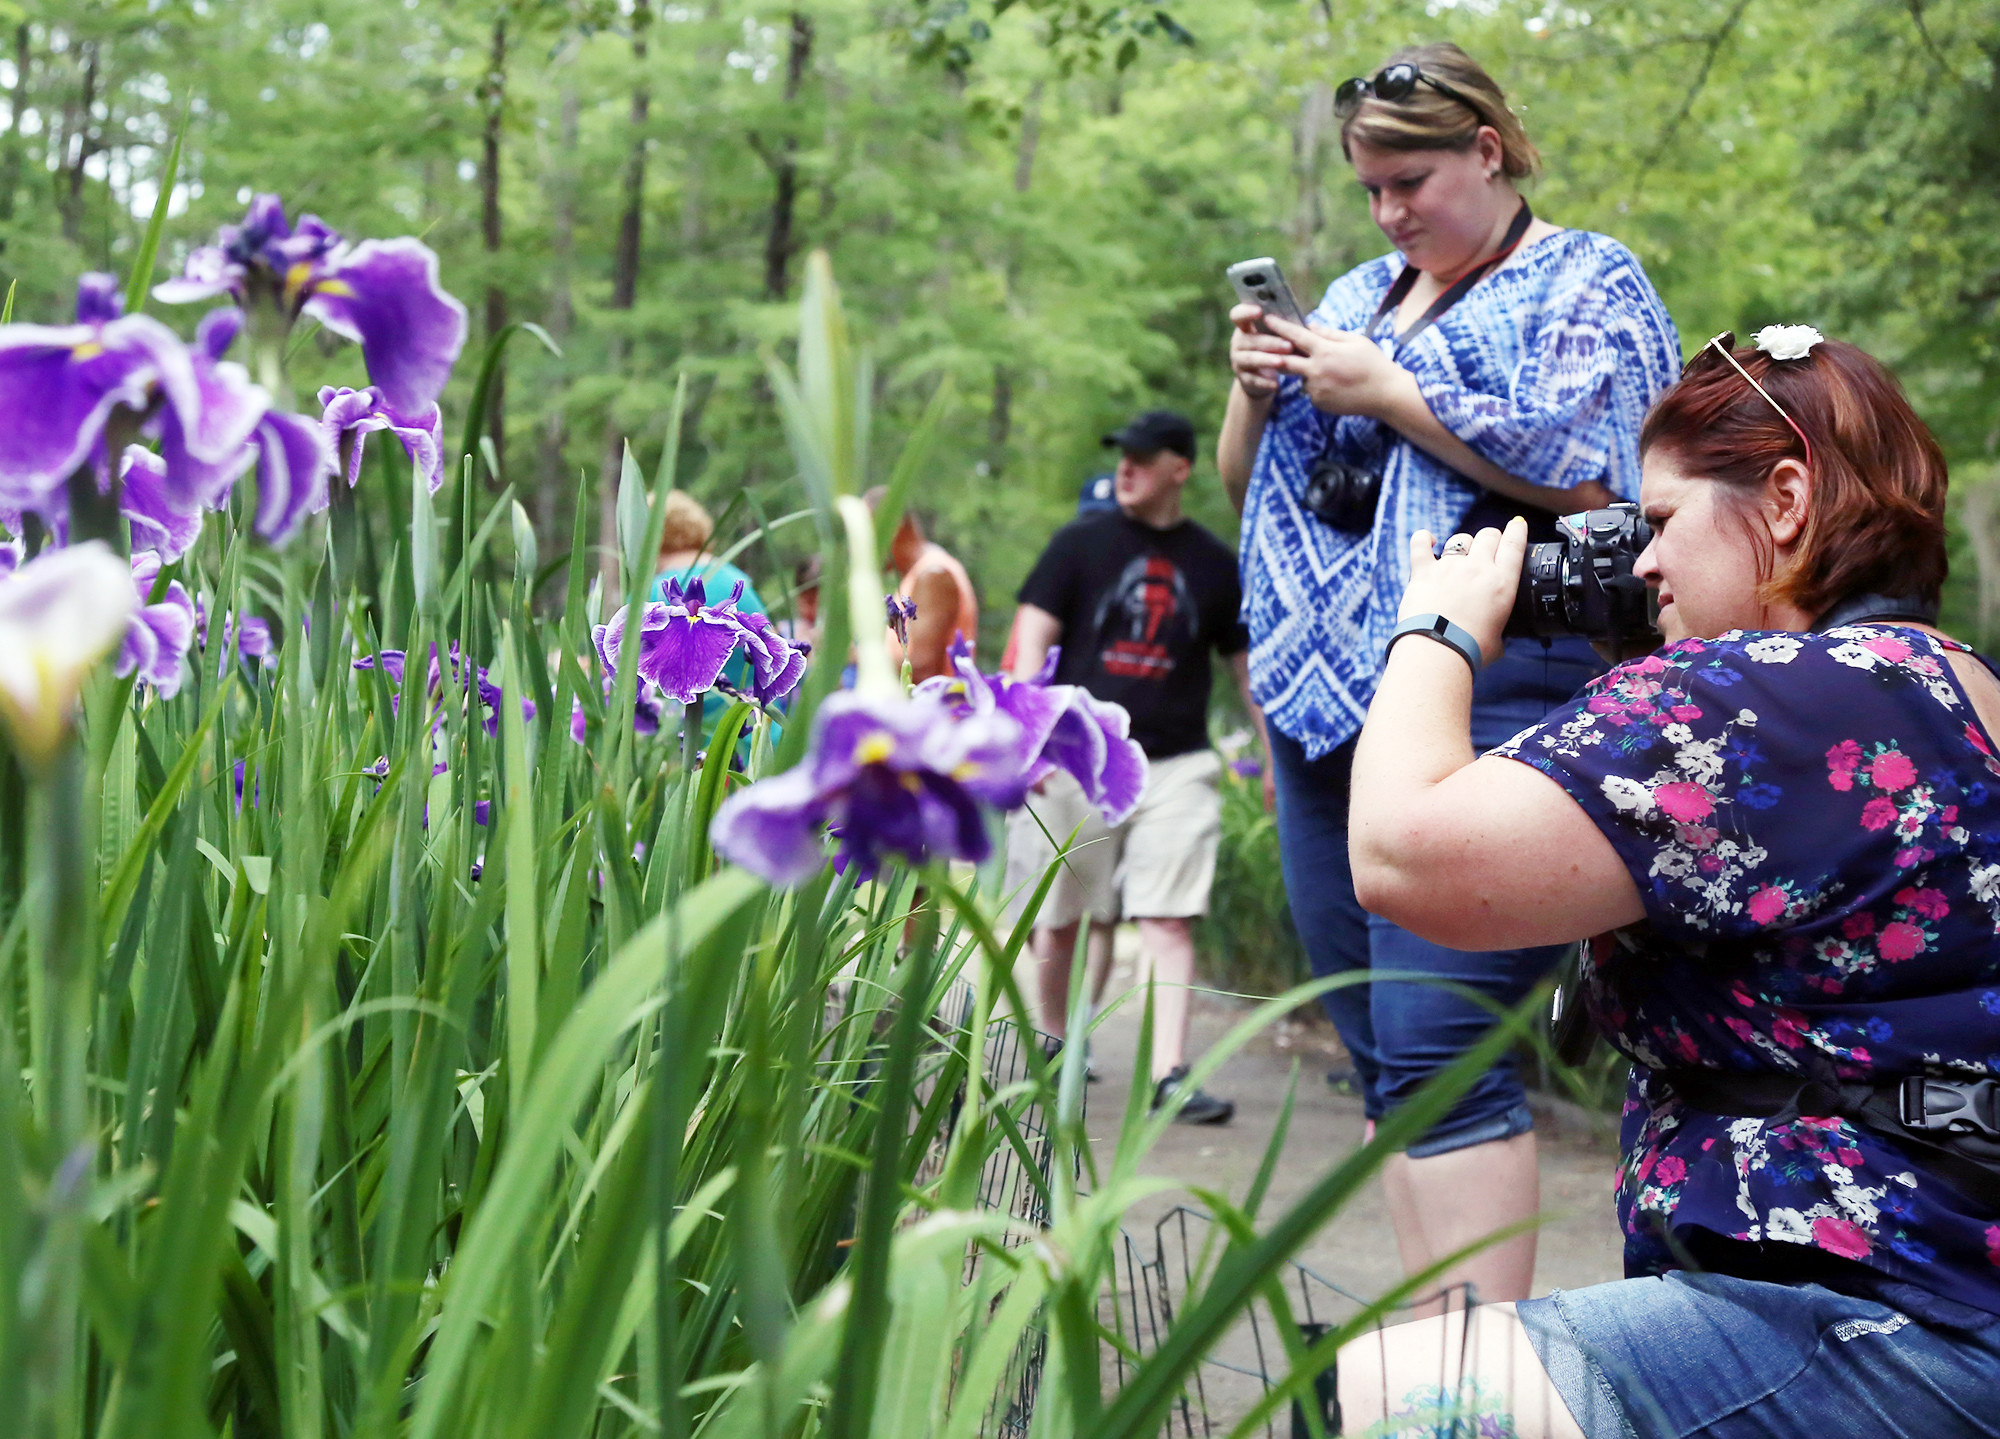 77th iris festival opens thursday the sumter item rebecca kevern and kristen vaughn take pictures of the blooming japanese irises at swan lake during izmirmasajfo